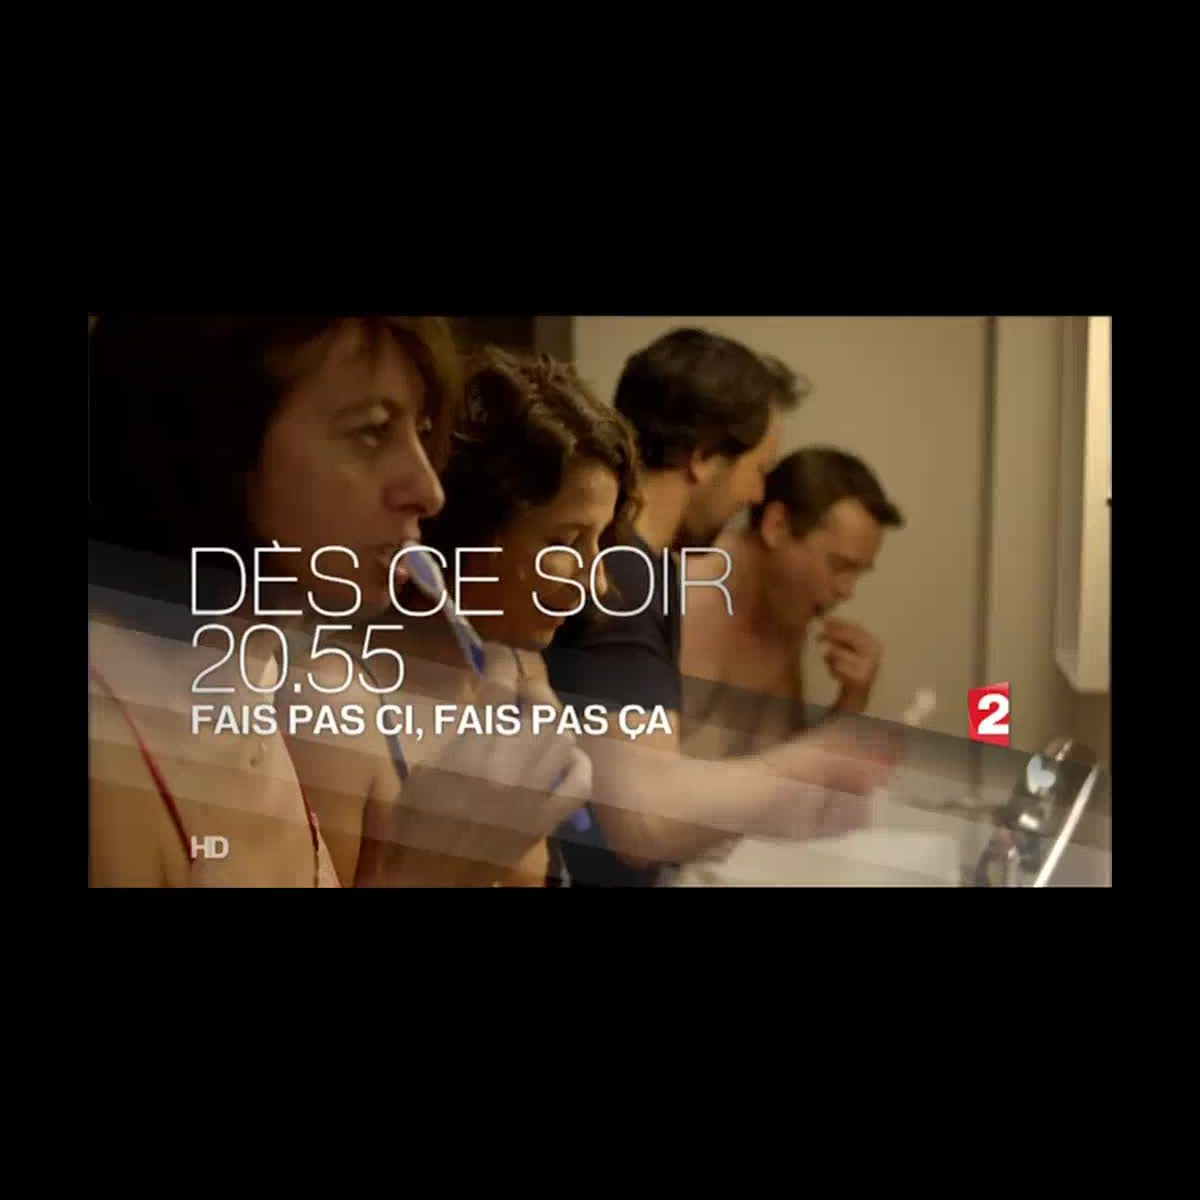 fais pas ci fais pas a la saison 8 d s ce soir sur france 2 puremedias. Black Bedroom Furniture Sets. Home Design Ideas